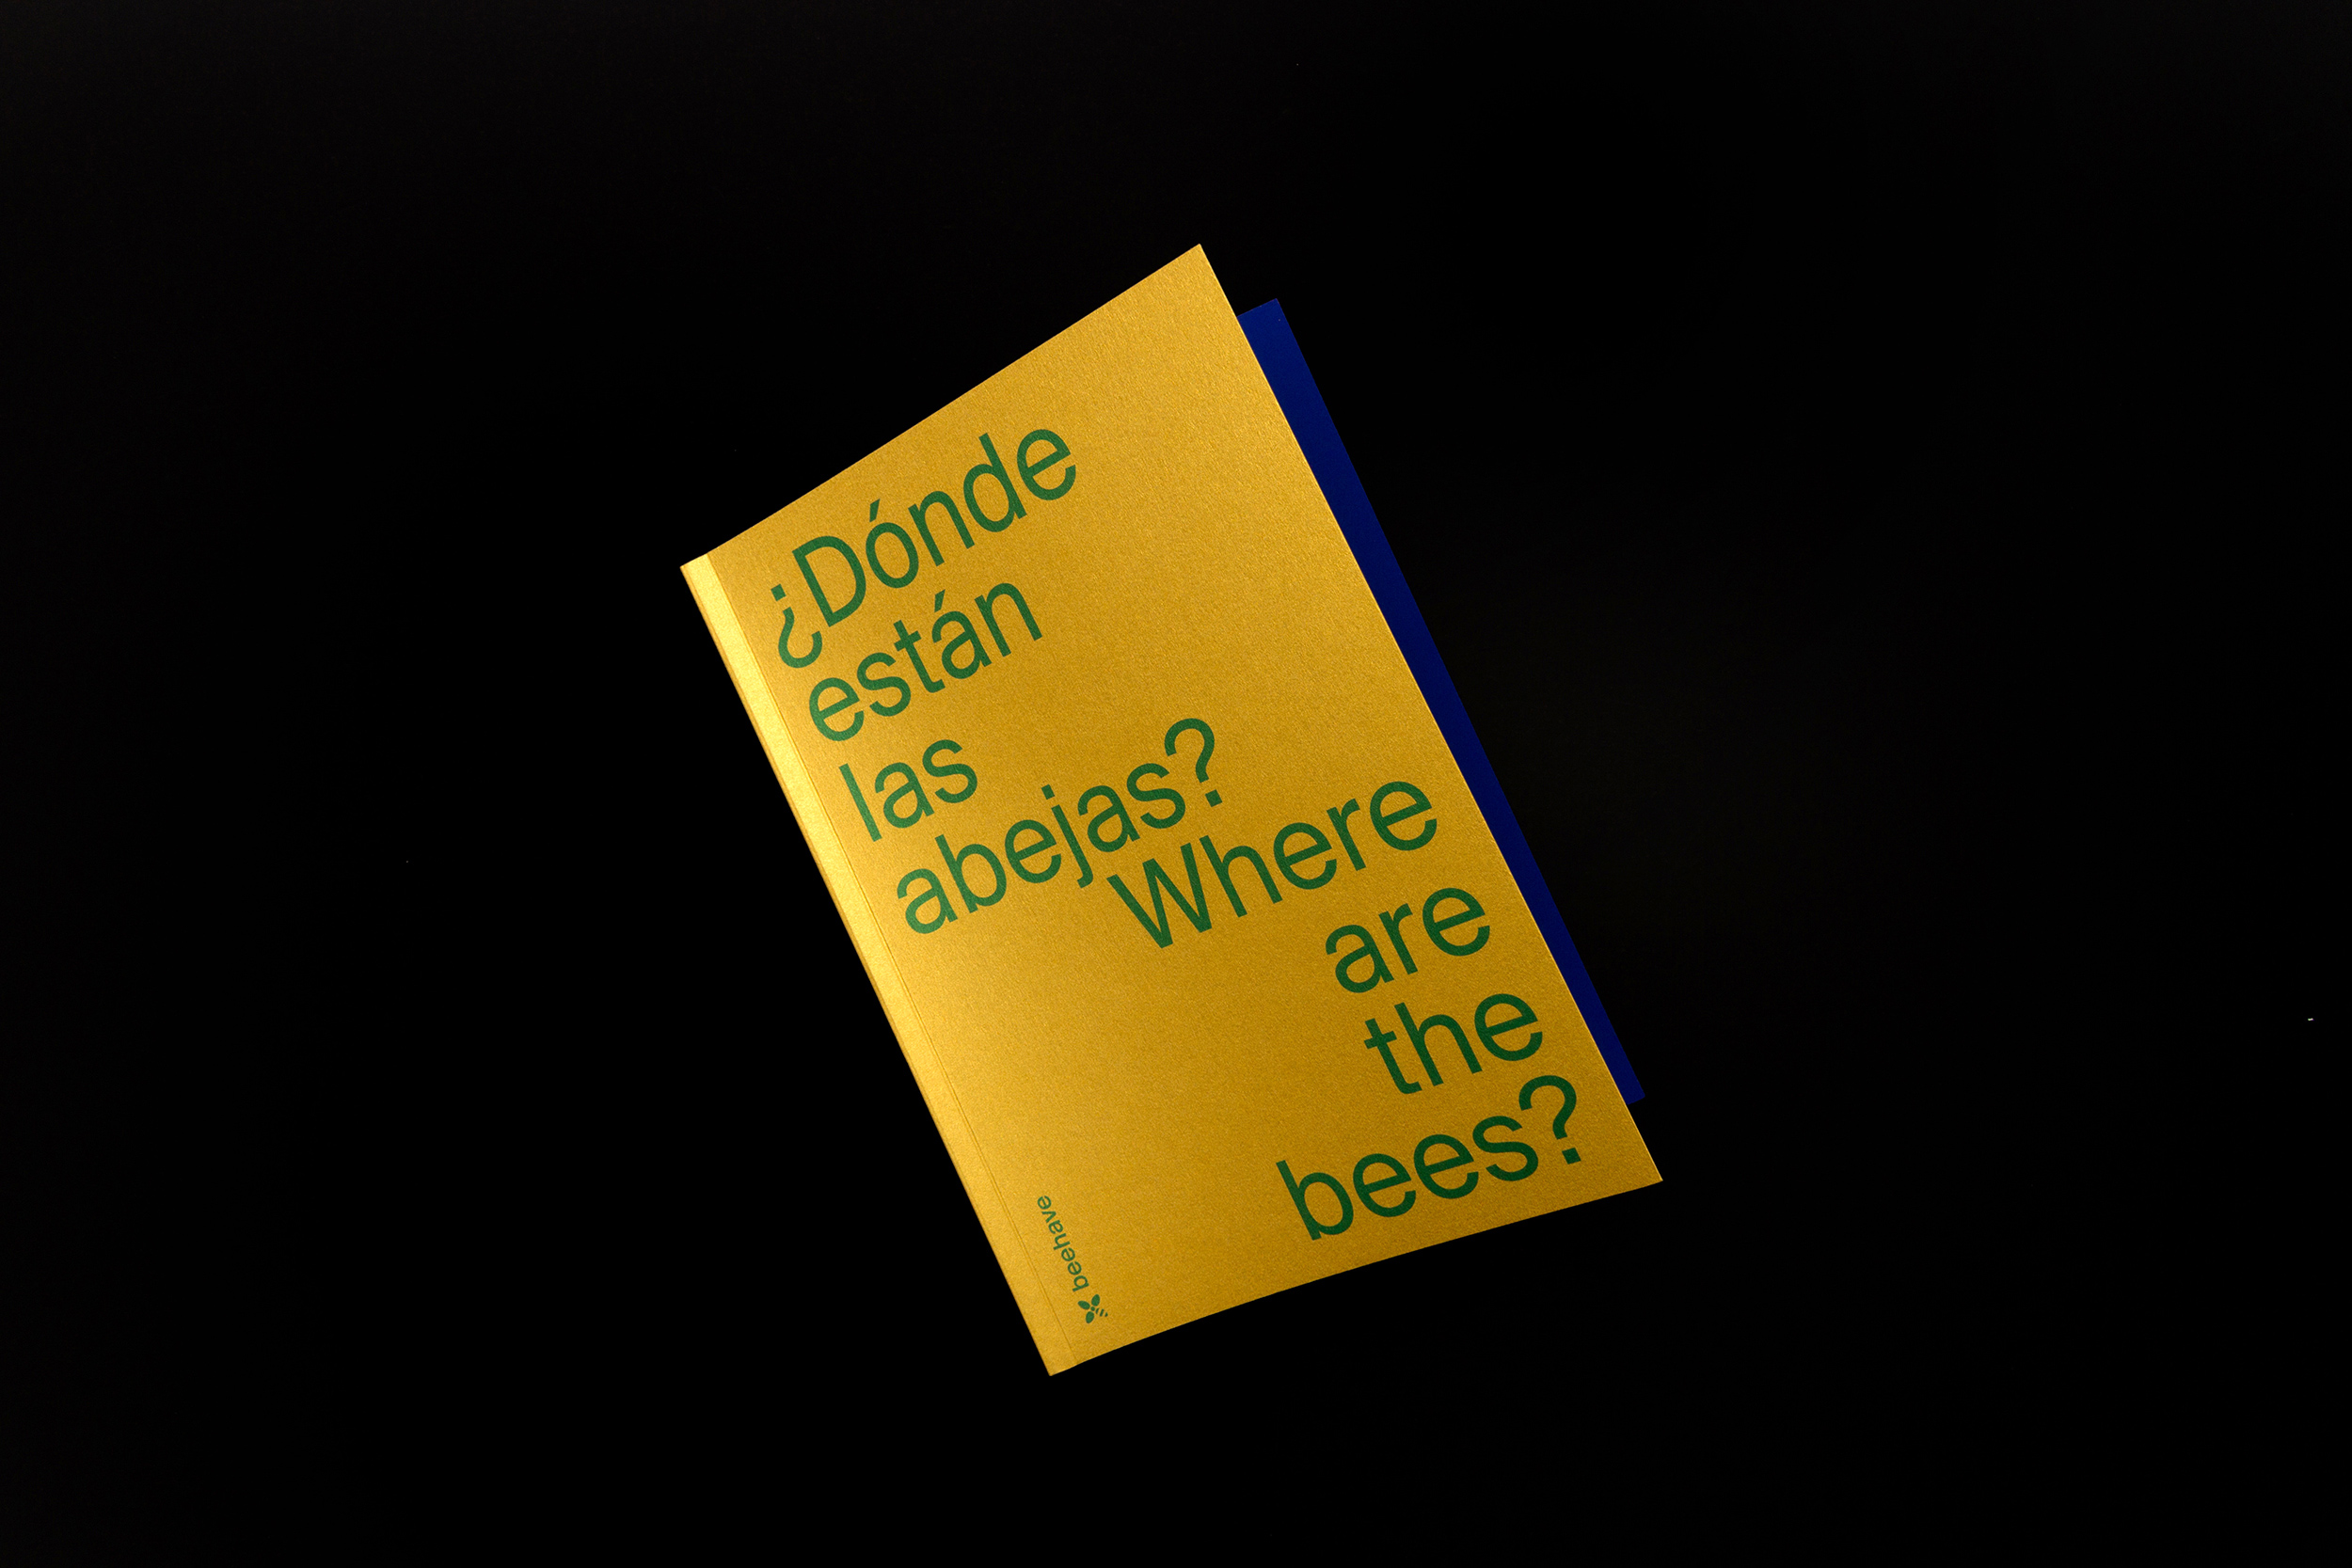 todojunto.net — Beehave publication: Where are the bees?